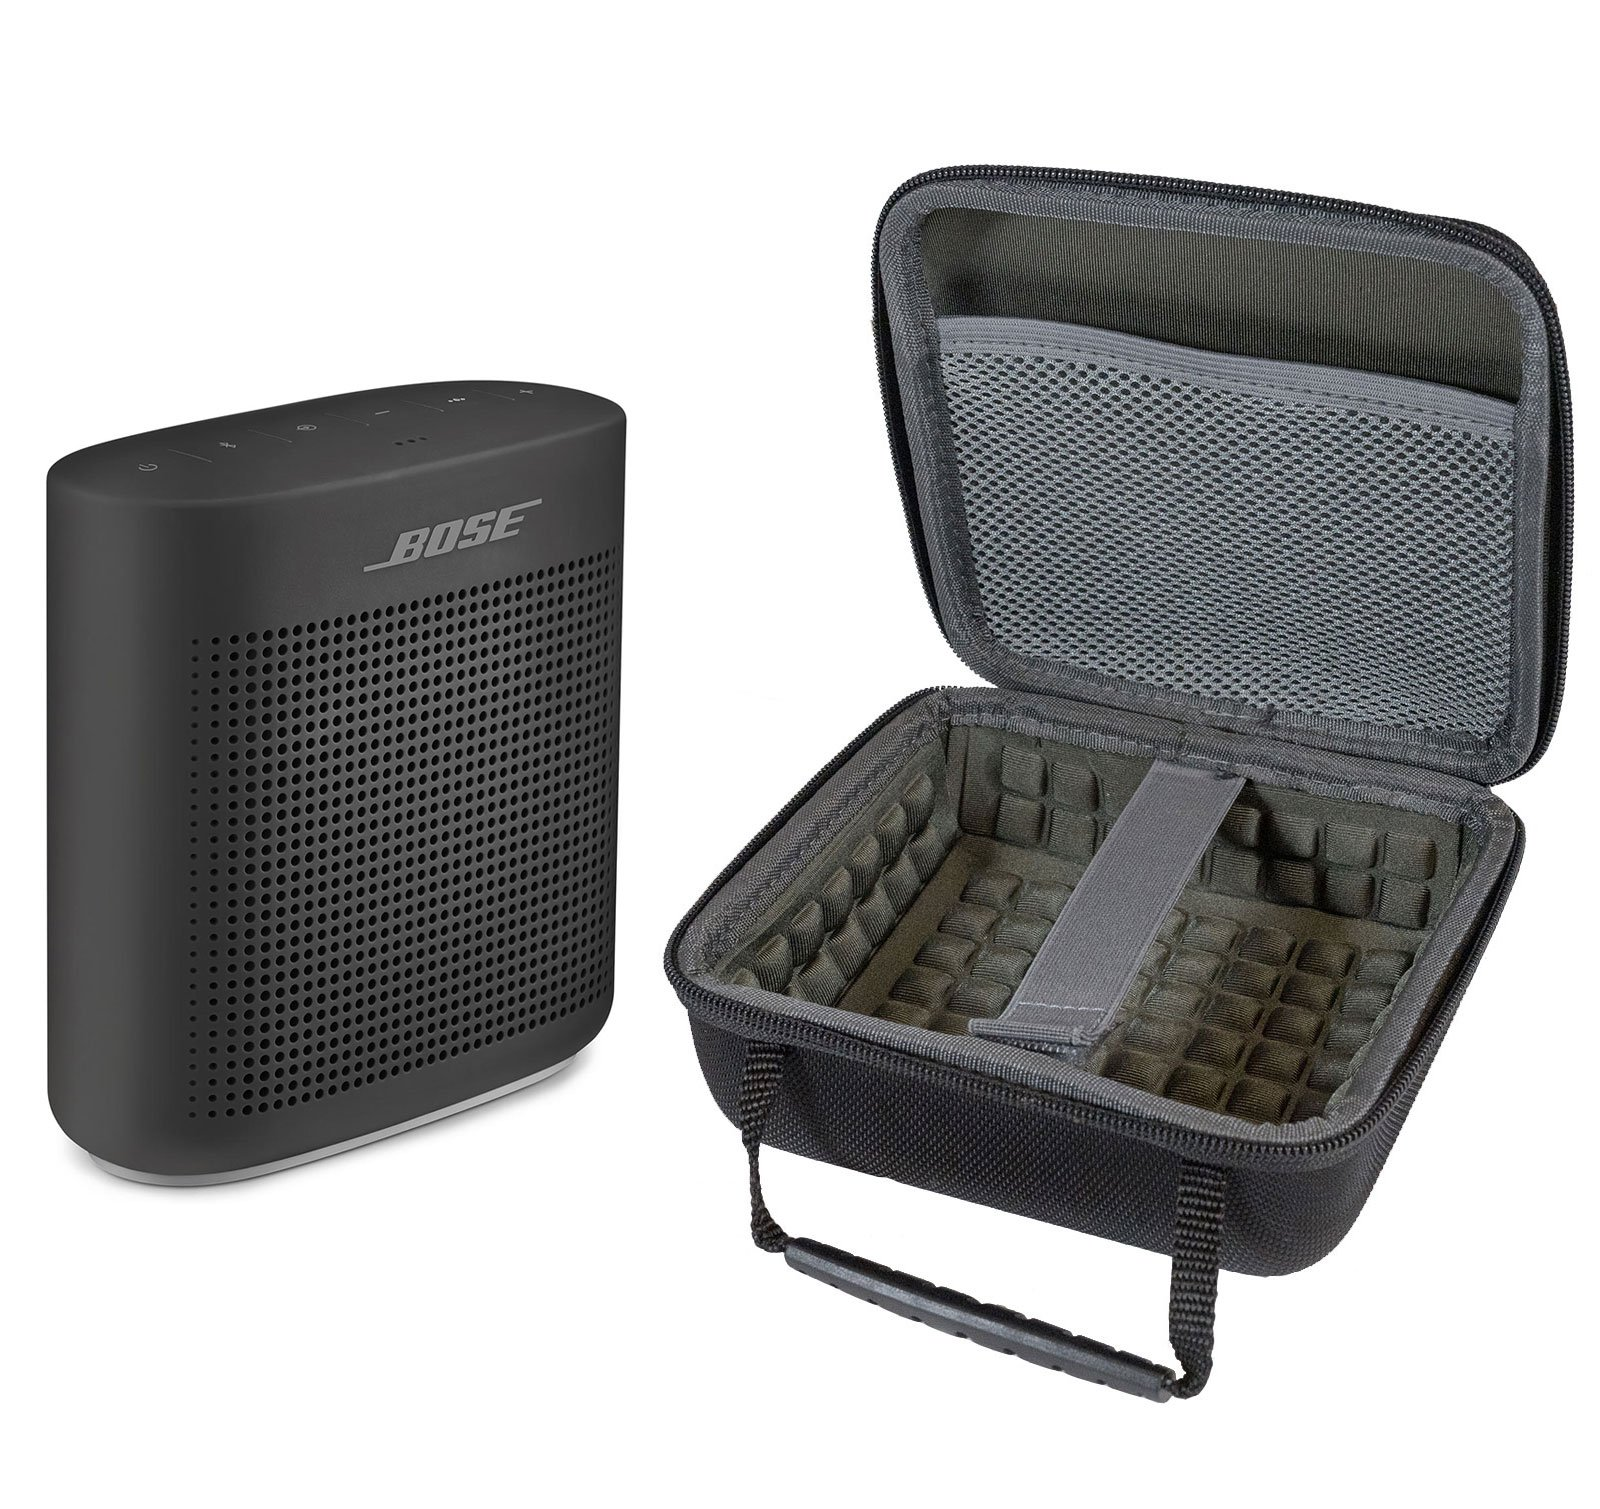 Bose SoundLink Color II Bluetooth Speaker, Soft Black, with Portable Hardshell Travel Case by Bose